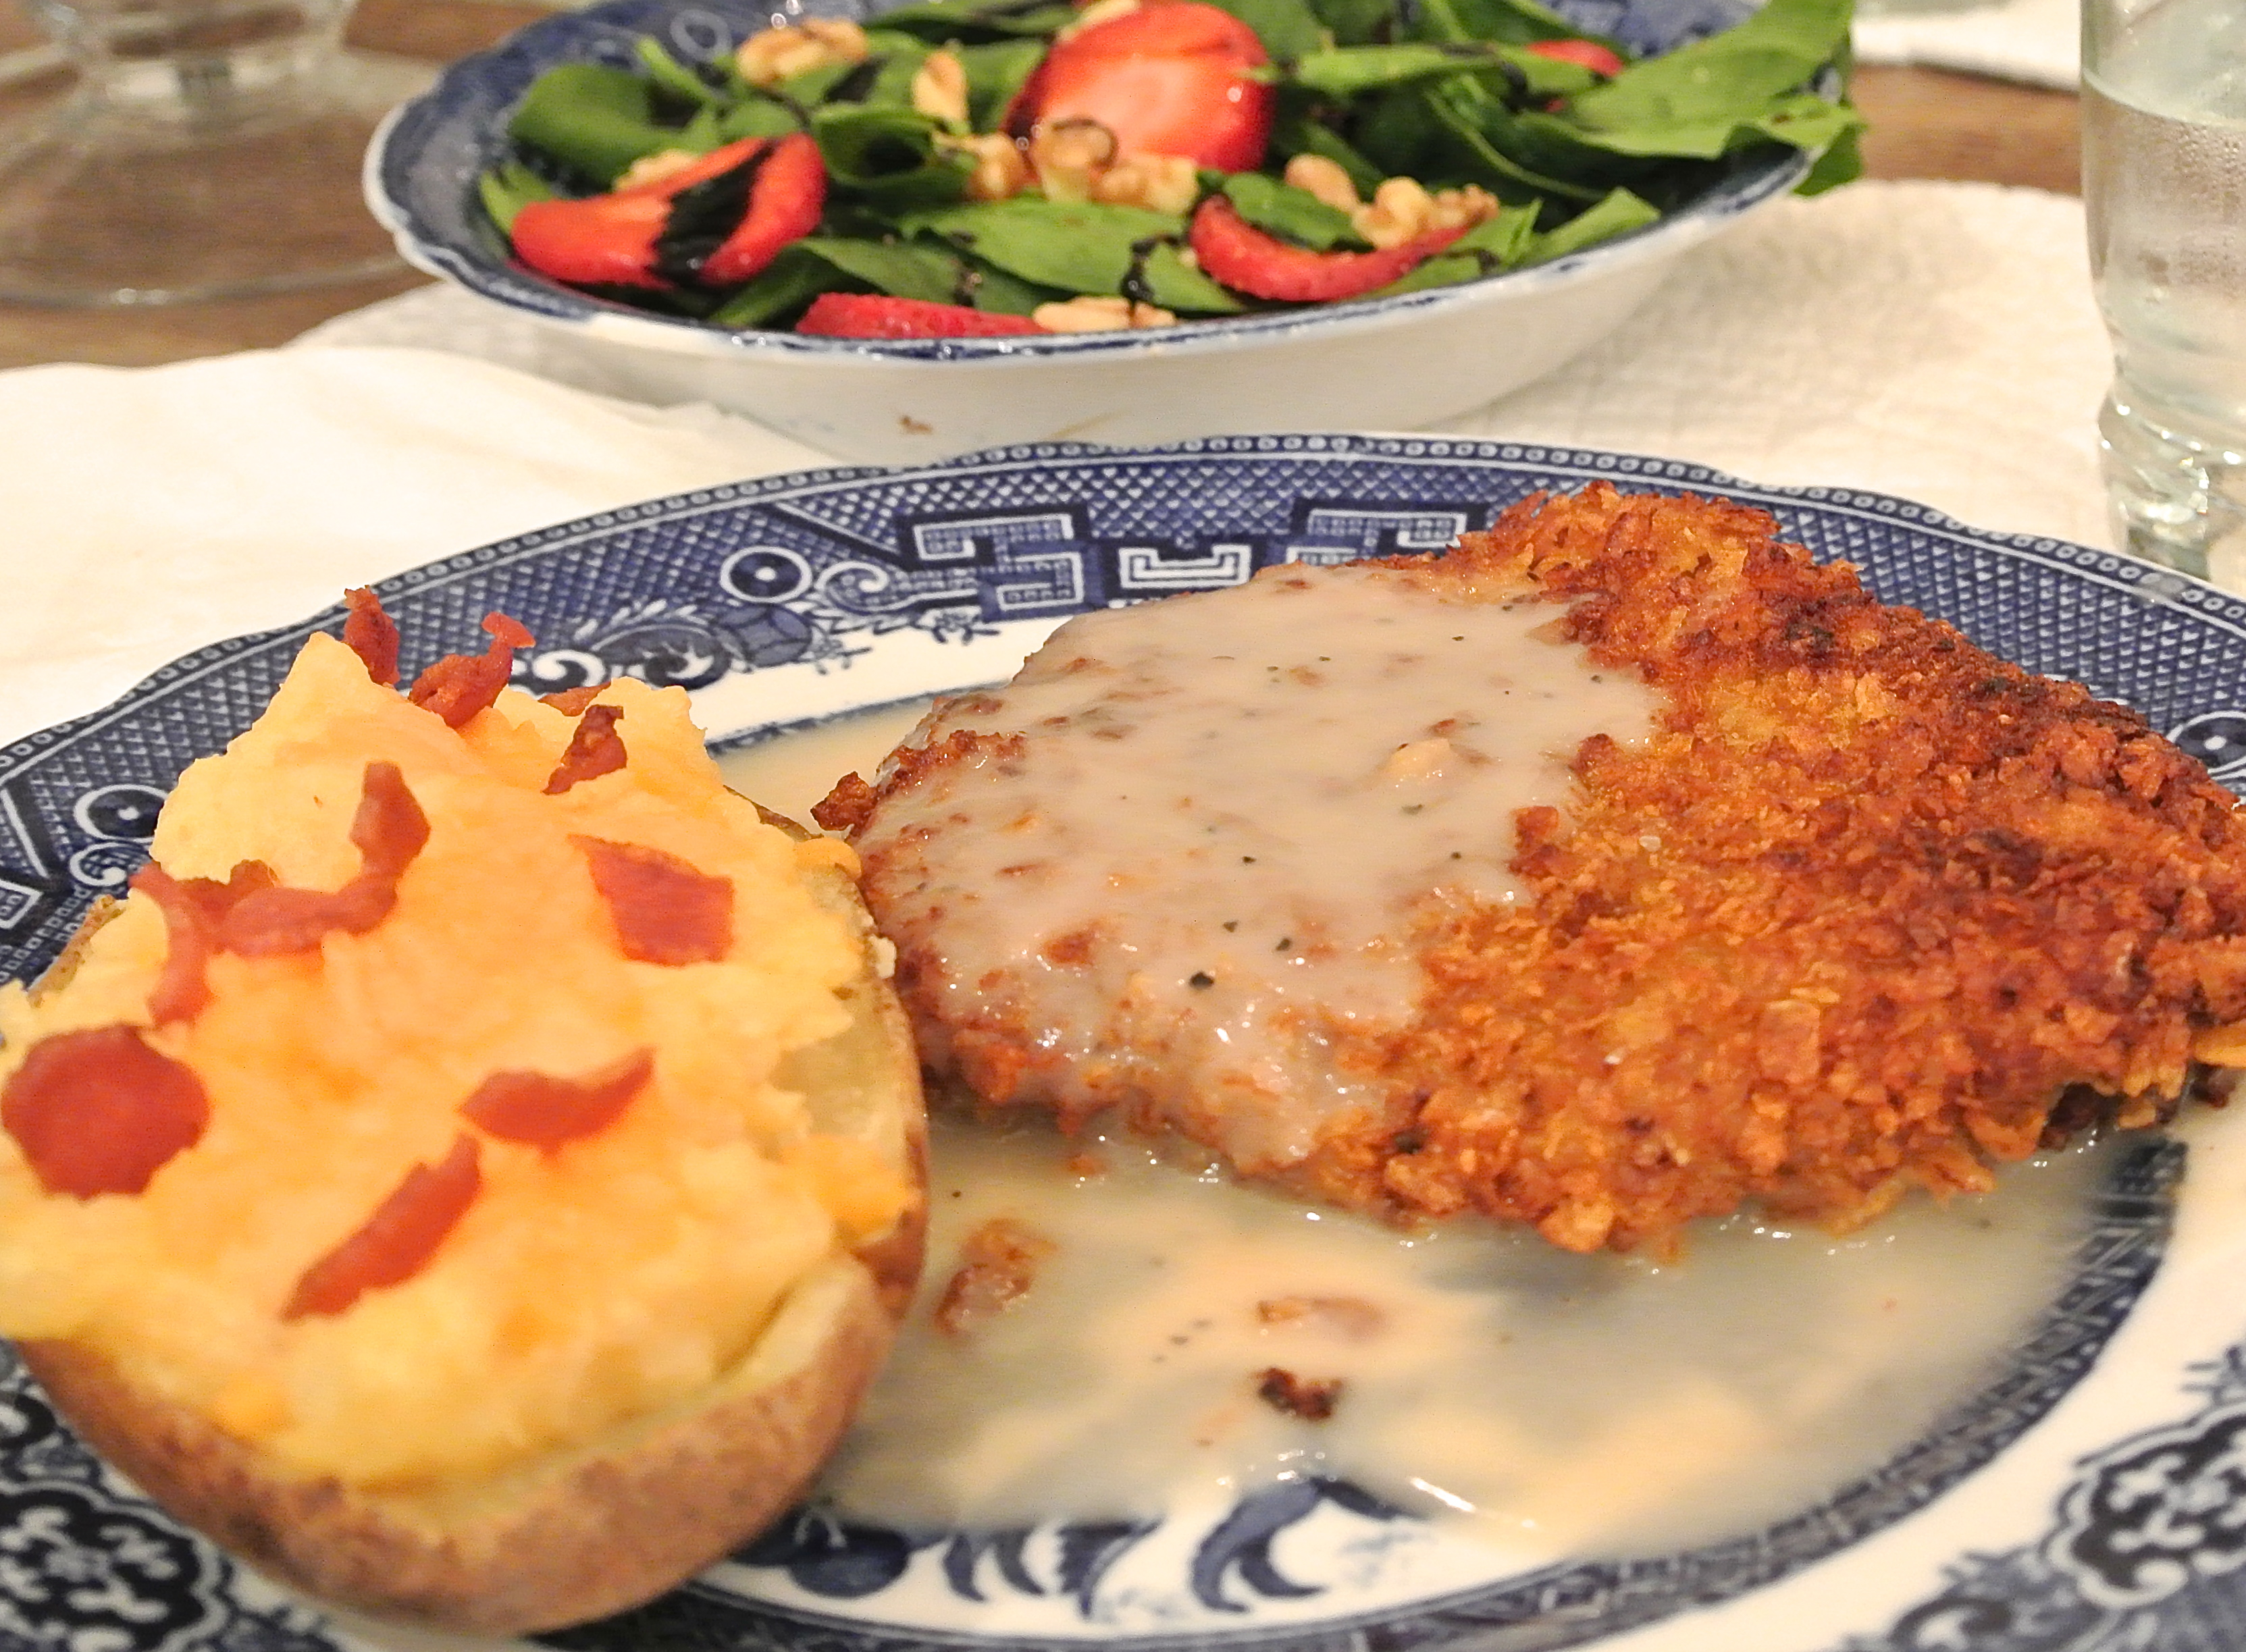 cubed steak and gravy, country fried steak